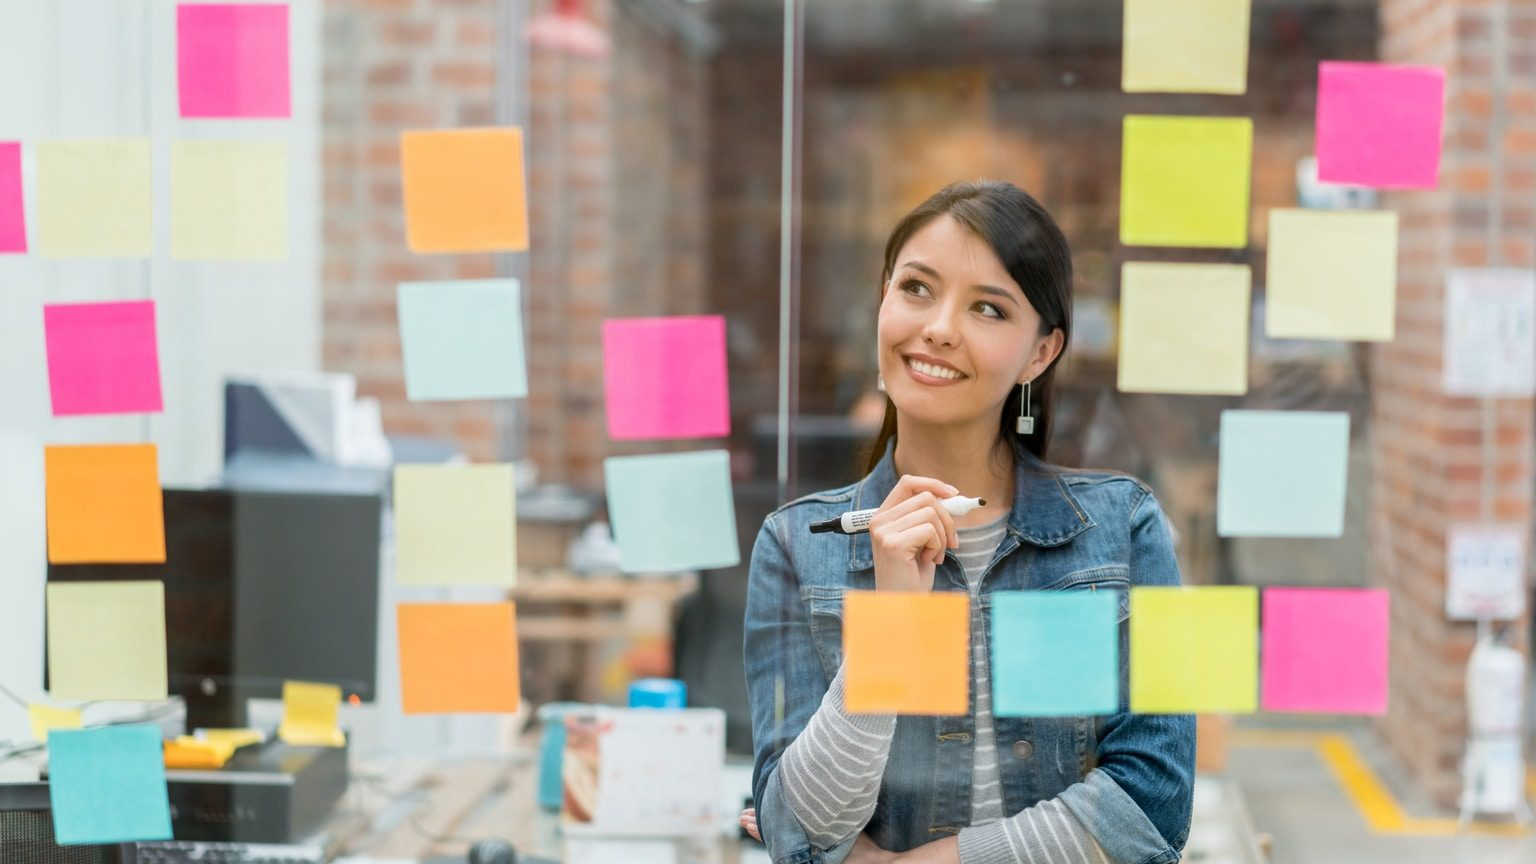 Smiling woman brainstorming ideas on sticky notes